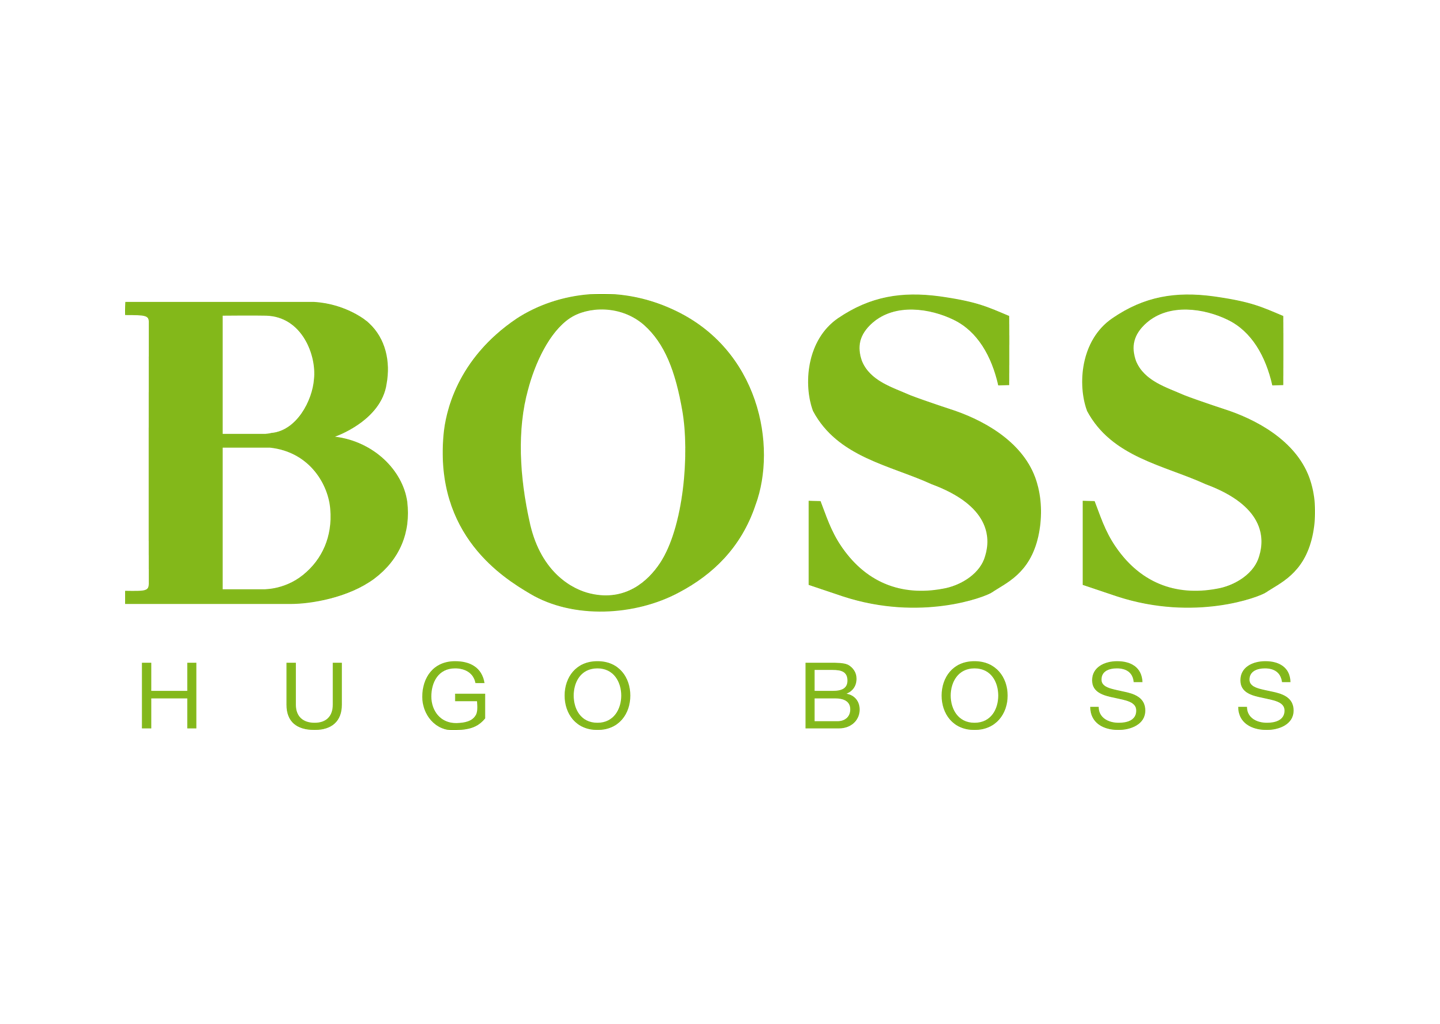 hugo boss logo logok. Black Bedroom Furniture Sets. Home Design Ideas